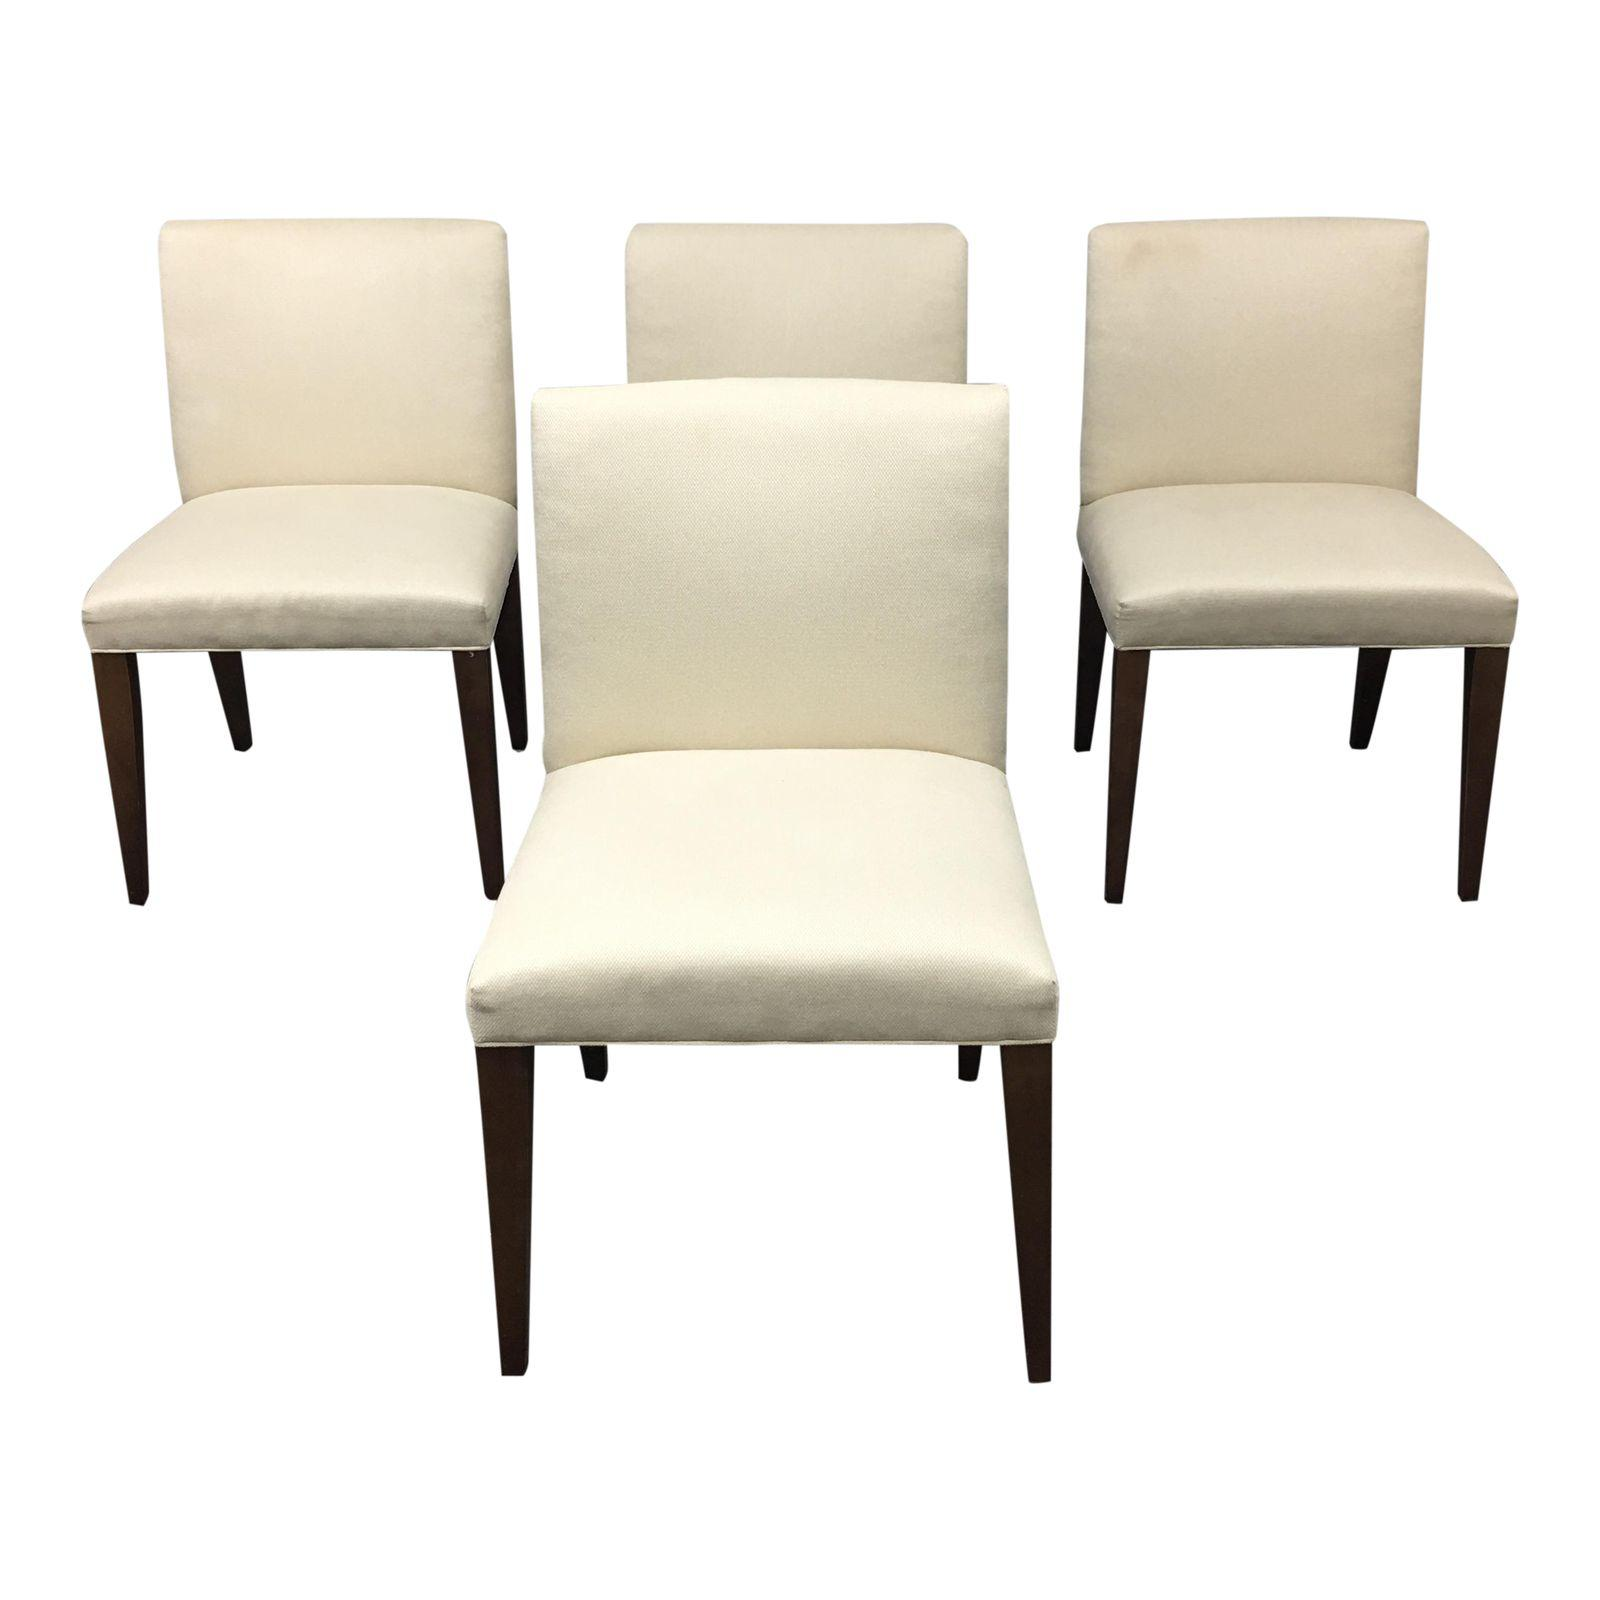 Room And Board Dining Chairs A Set Of Four Room Amp Board Marie Dining Chairs In Creamy White